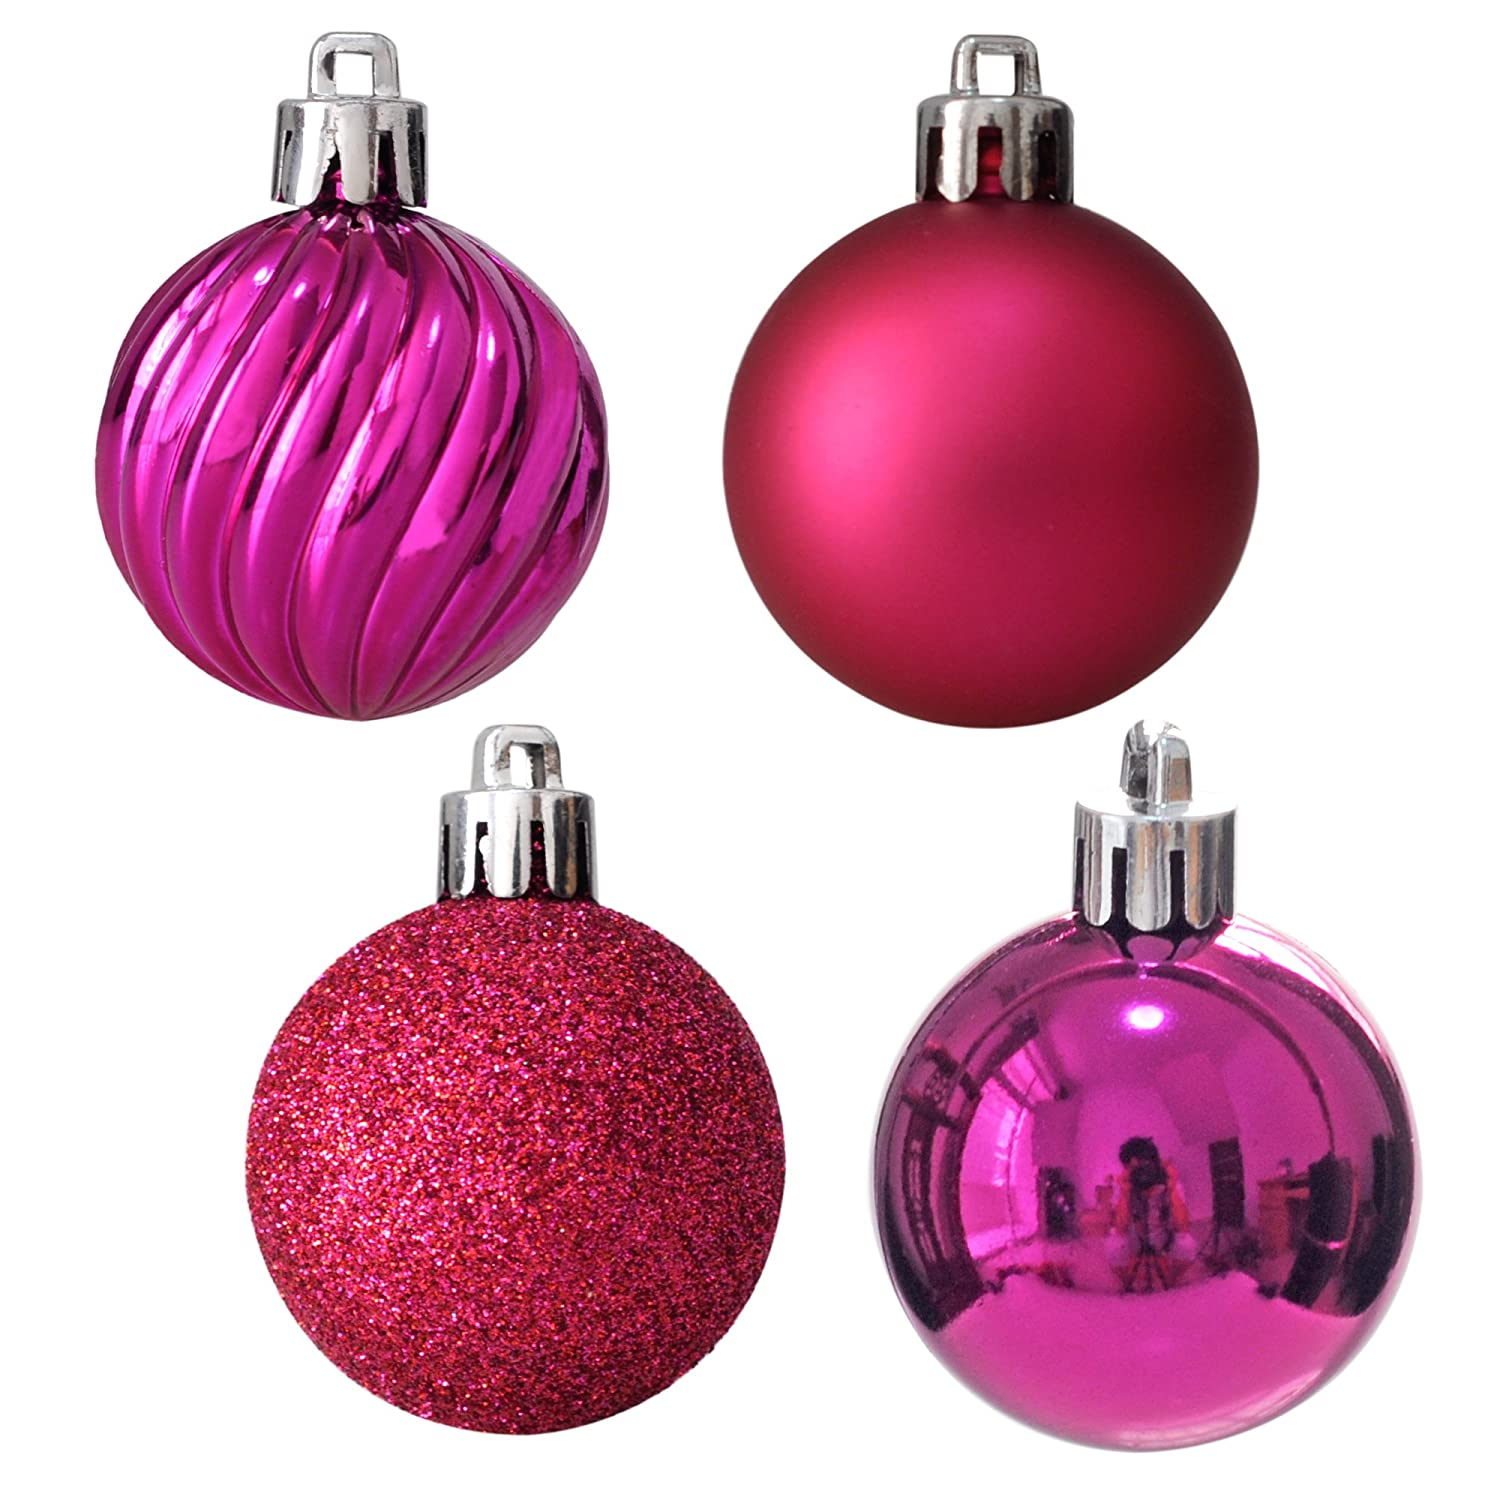 Perfect for all types of Christmas decor decorations Sets of 4 Retro Christmas baubles 4inch baubles.